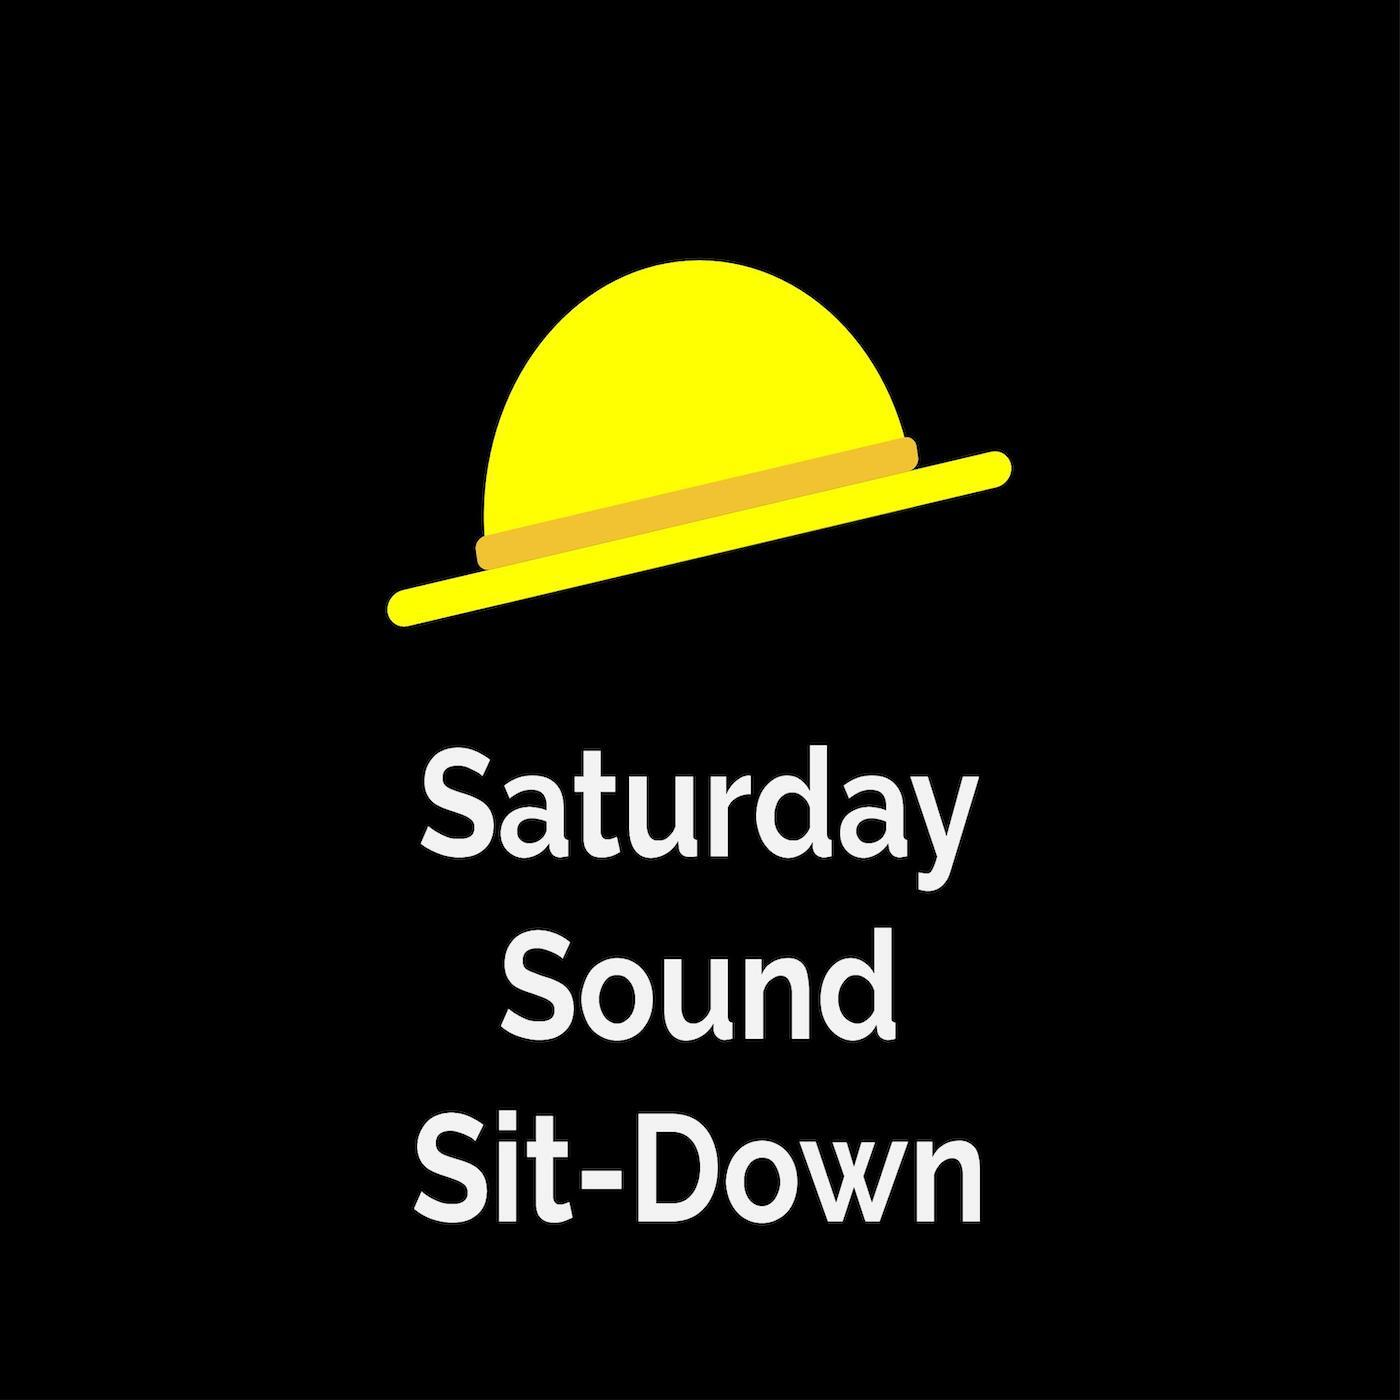 The Saturday Sound Sit-Down logo.